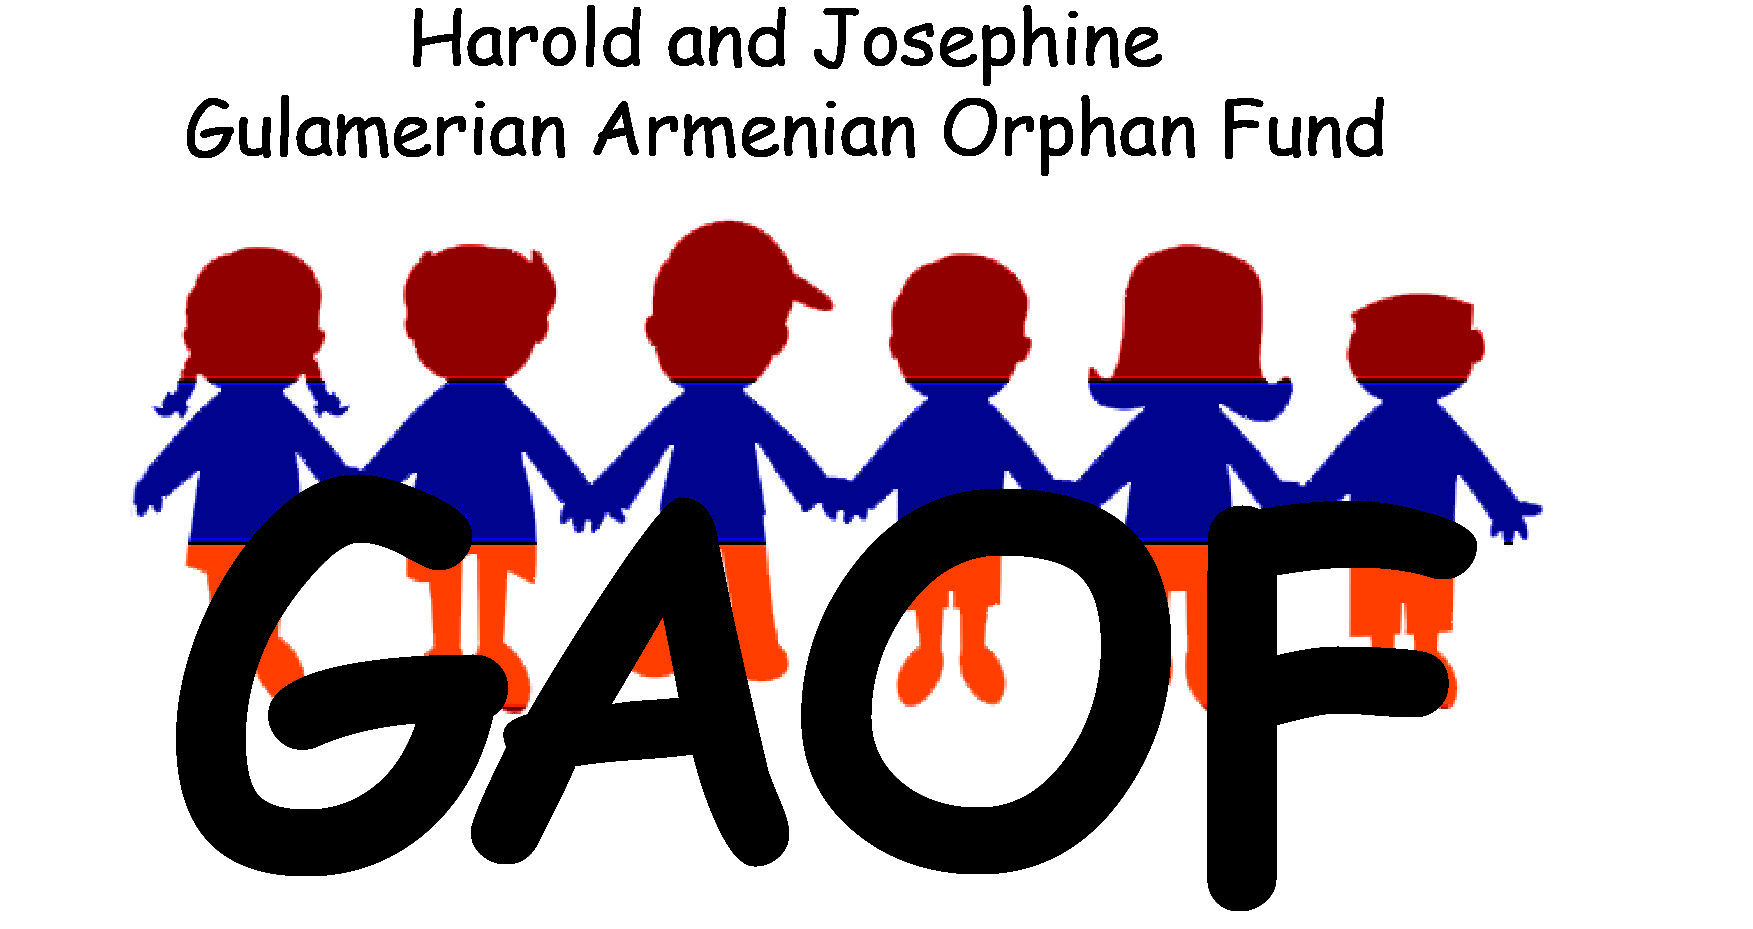 Harold and Josephine Gulamerian Armenian Orphan Fund